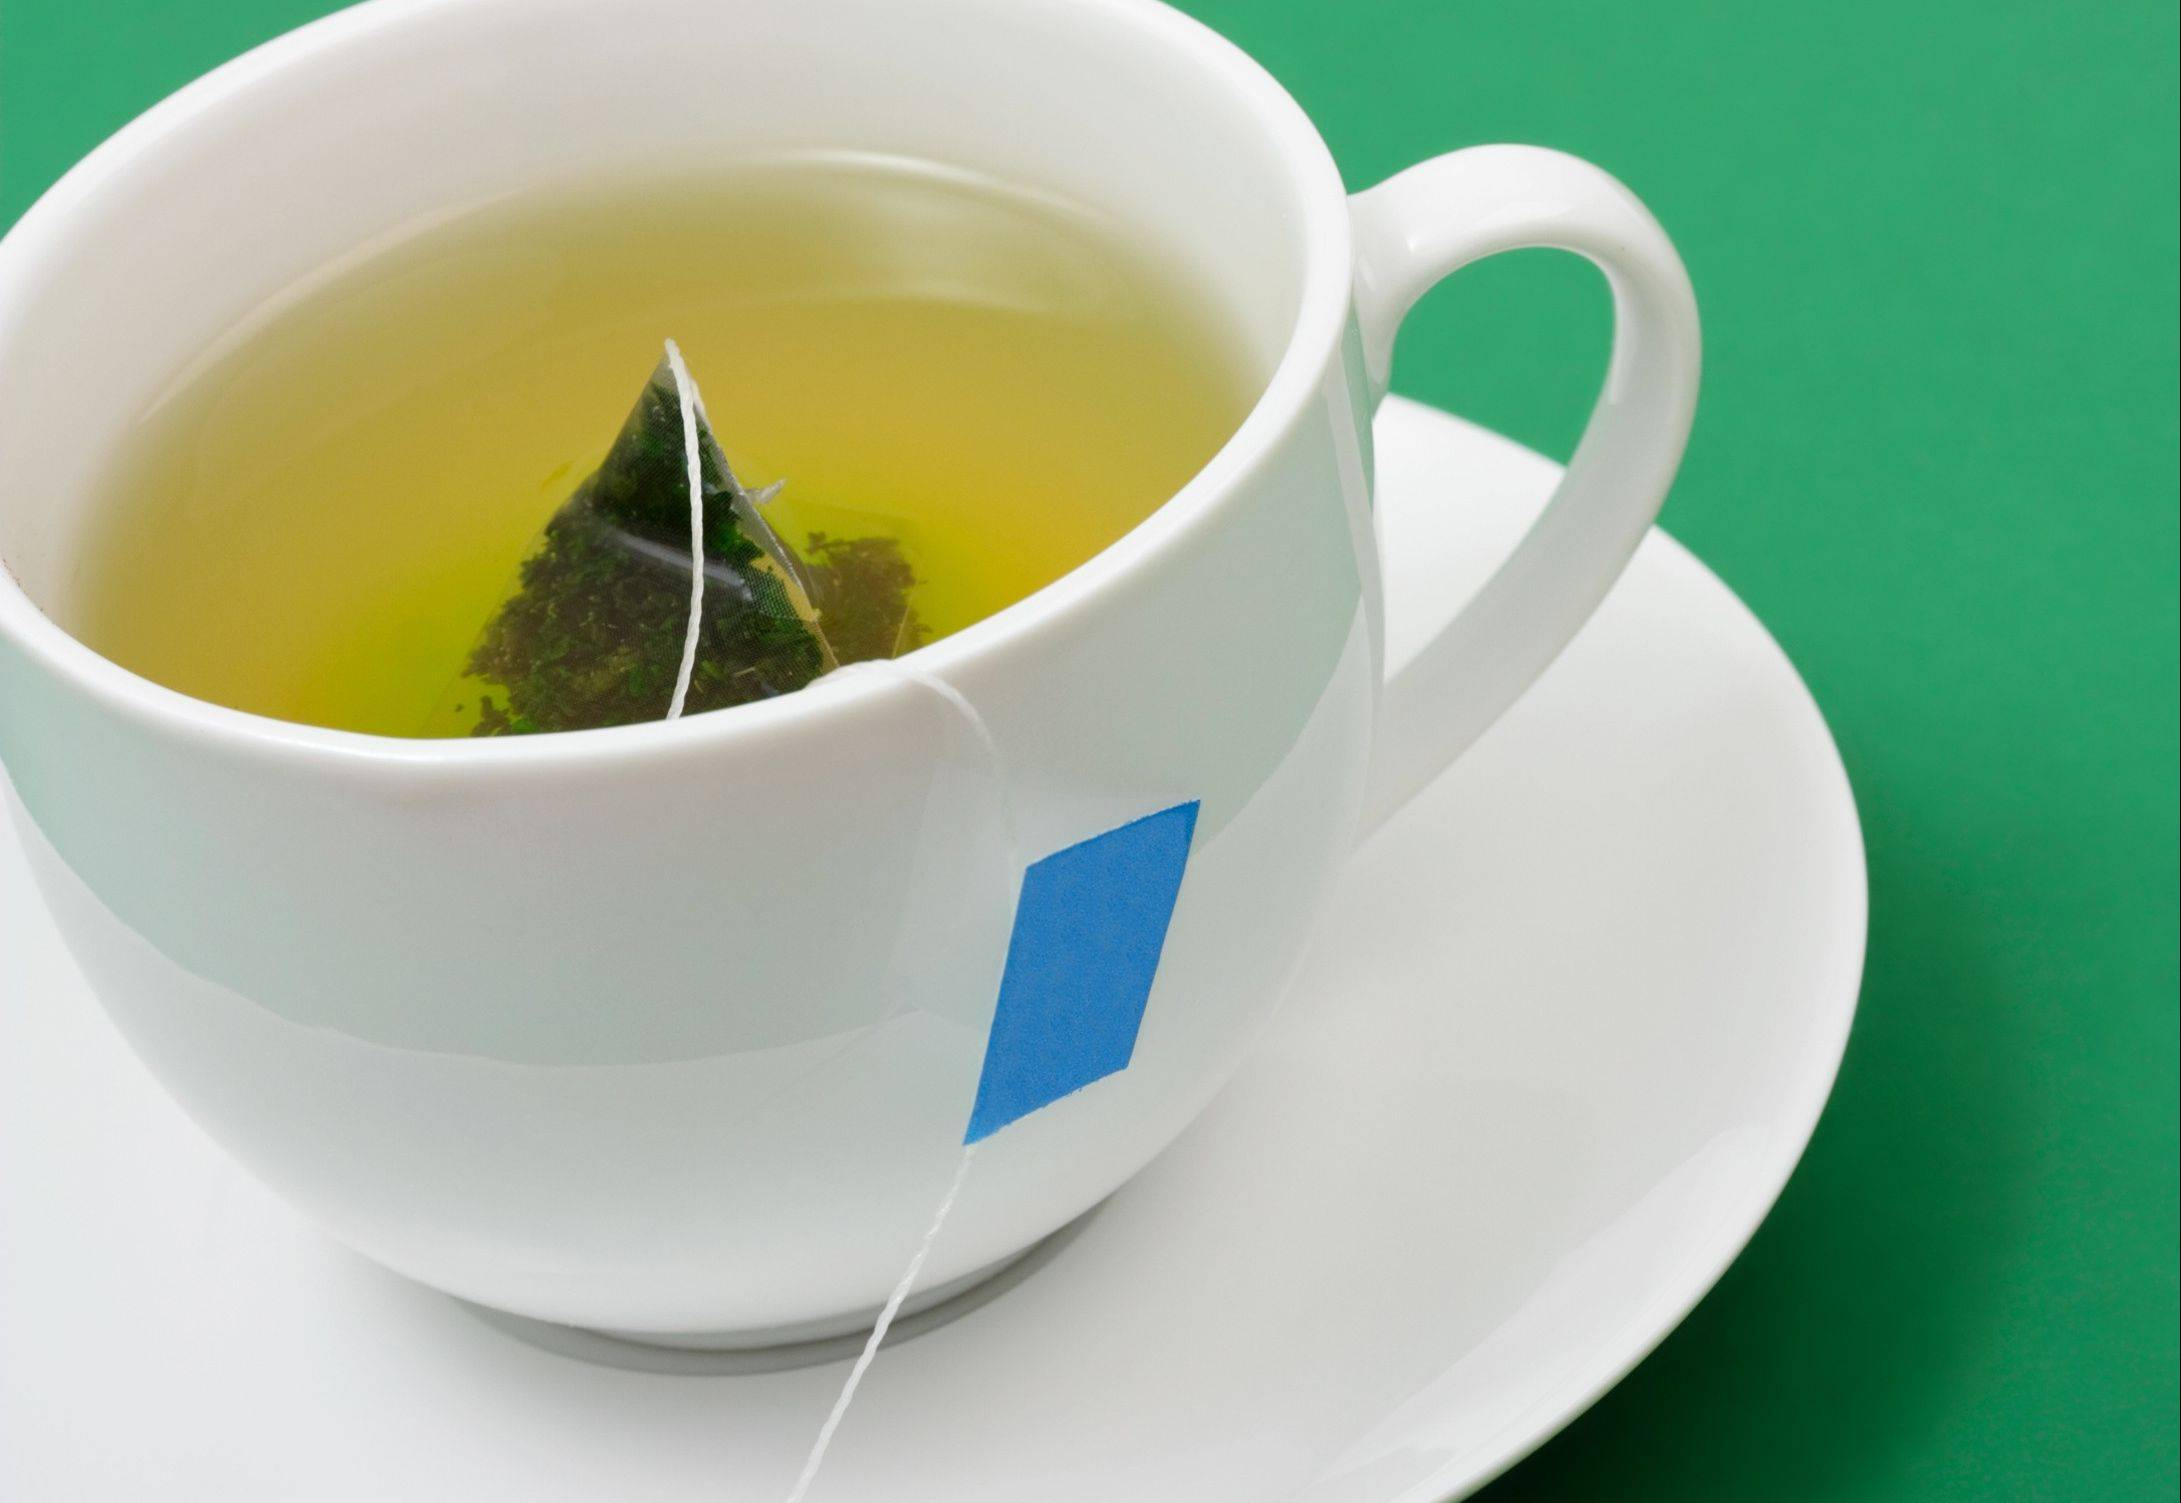 Scientists have found that almost every cell in the body potentially benefits from tea.